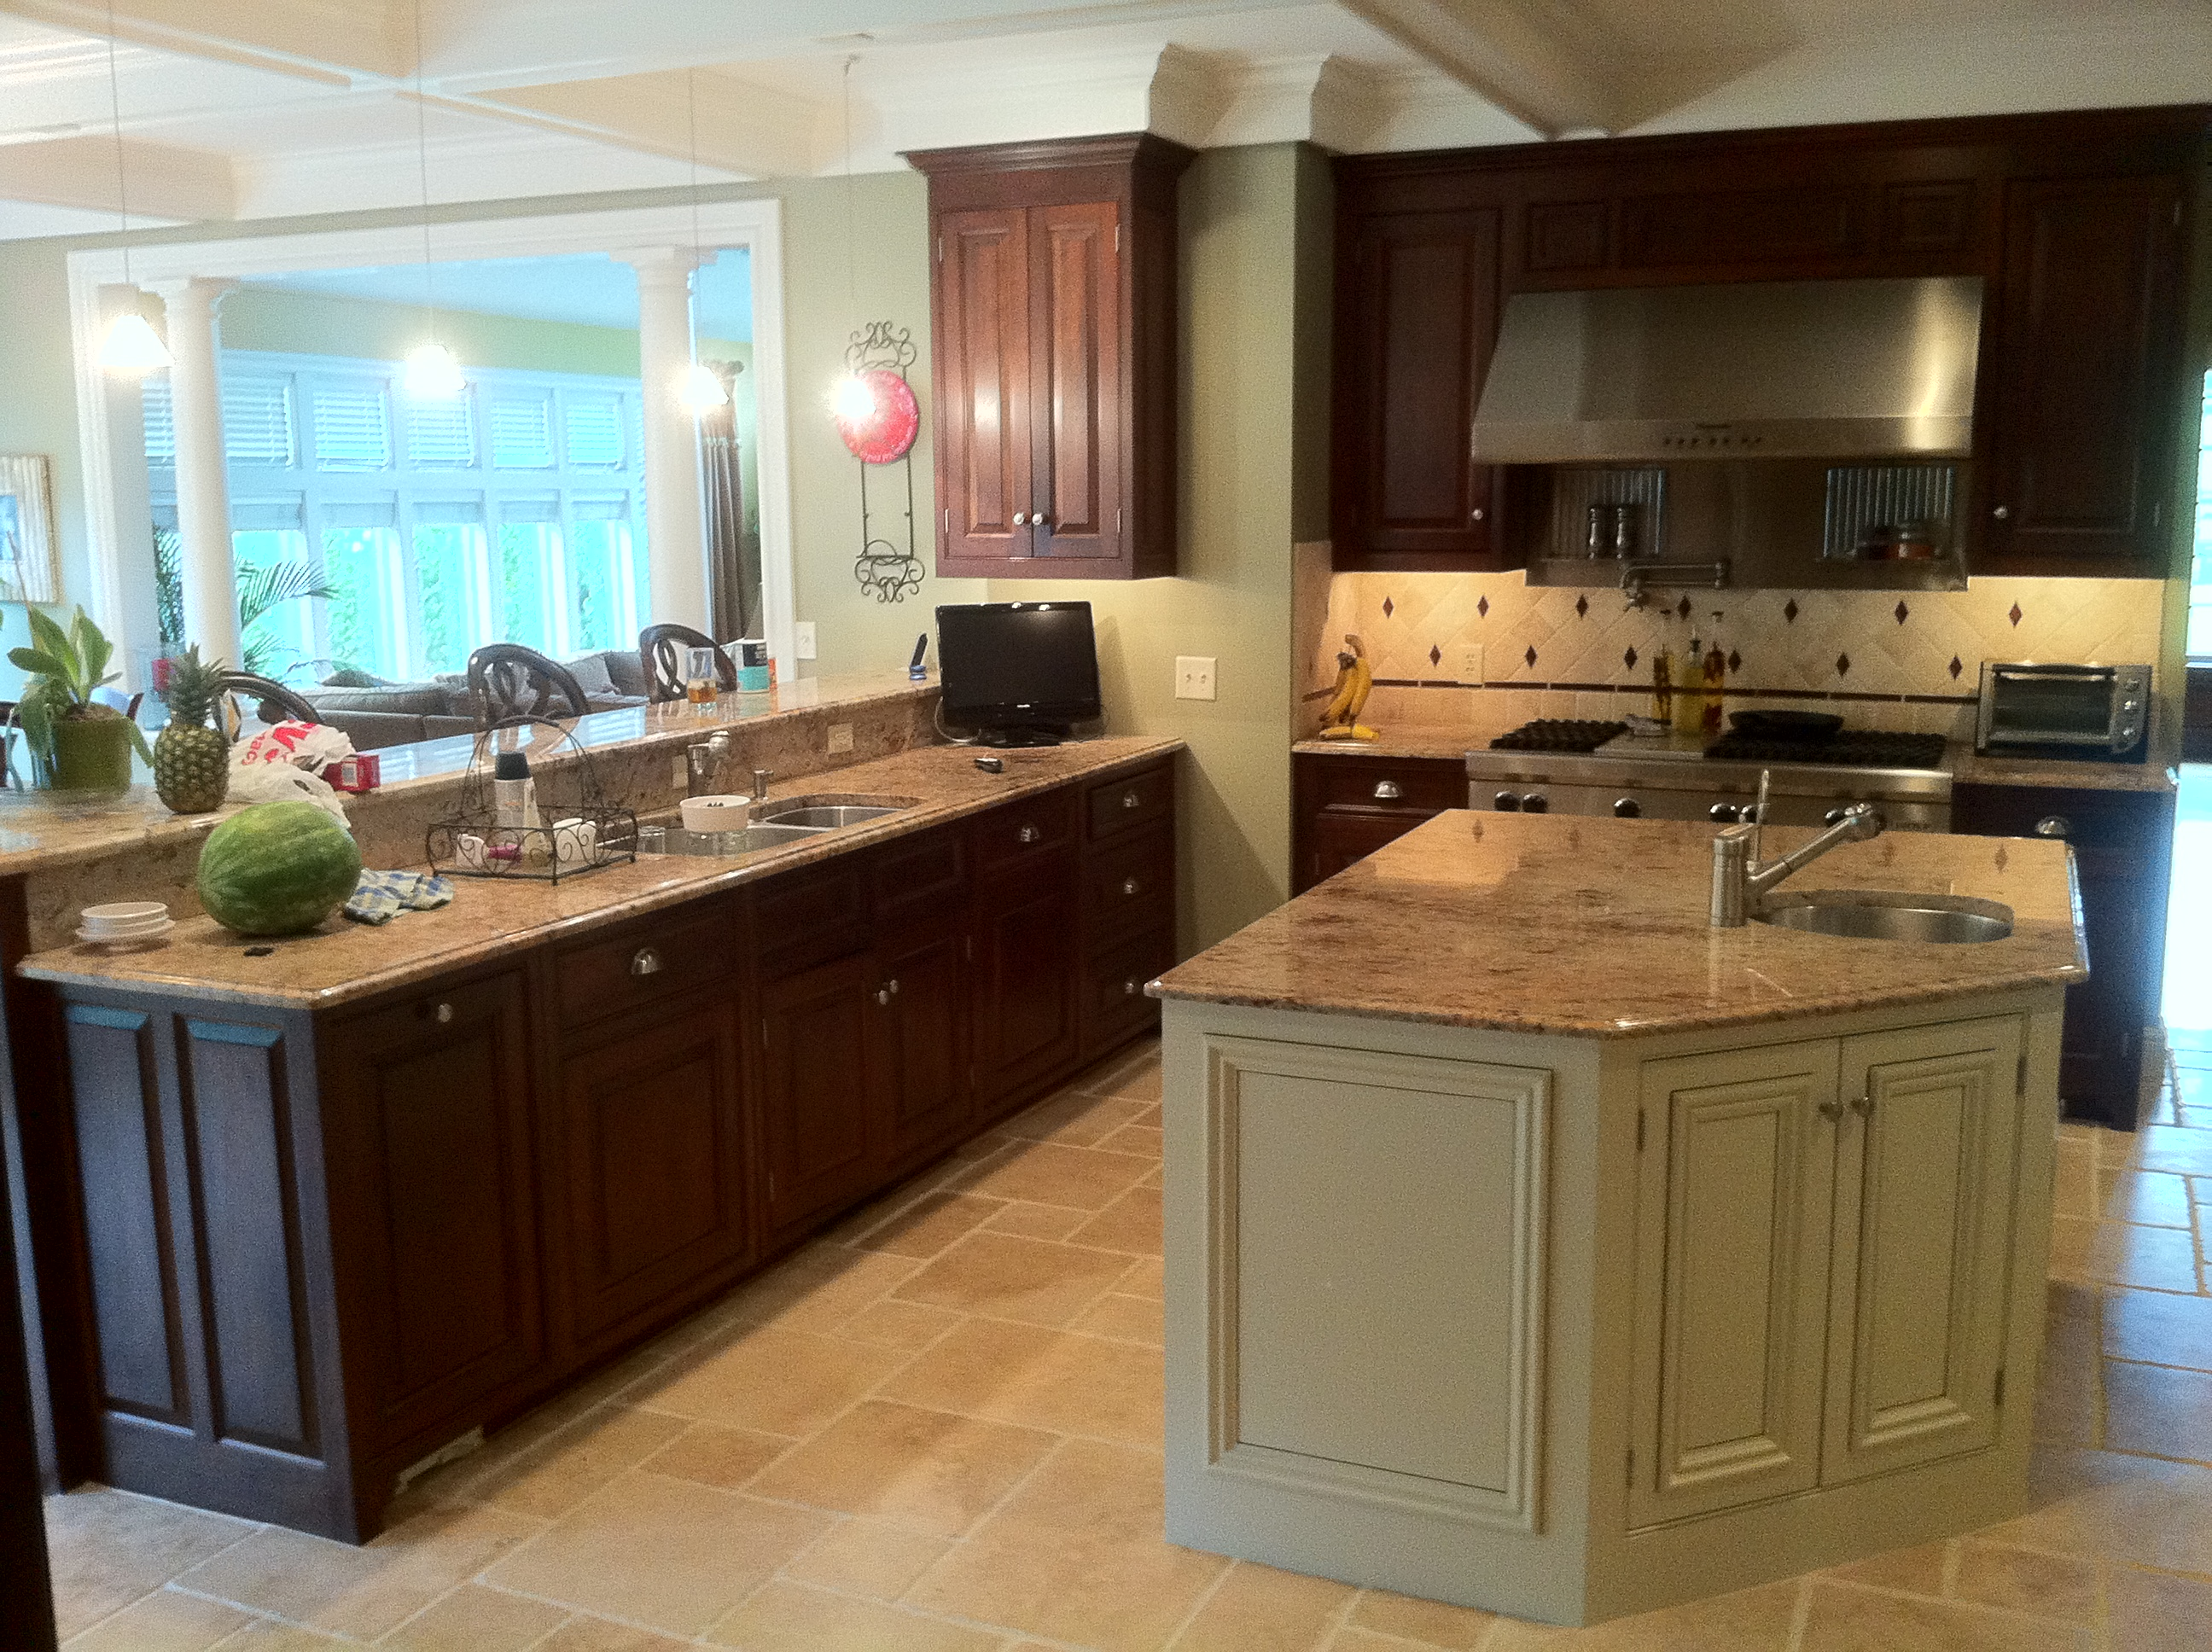 Cabinet Refinishing Kitchen Remodeling In Rhode Island RI - Bathroom remodeling providence ri